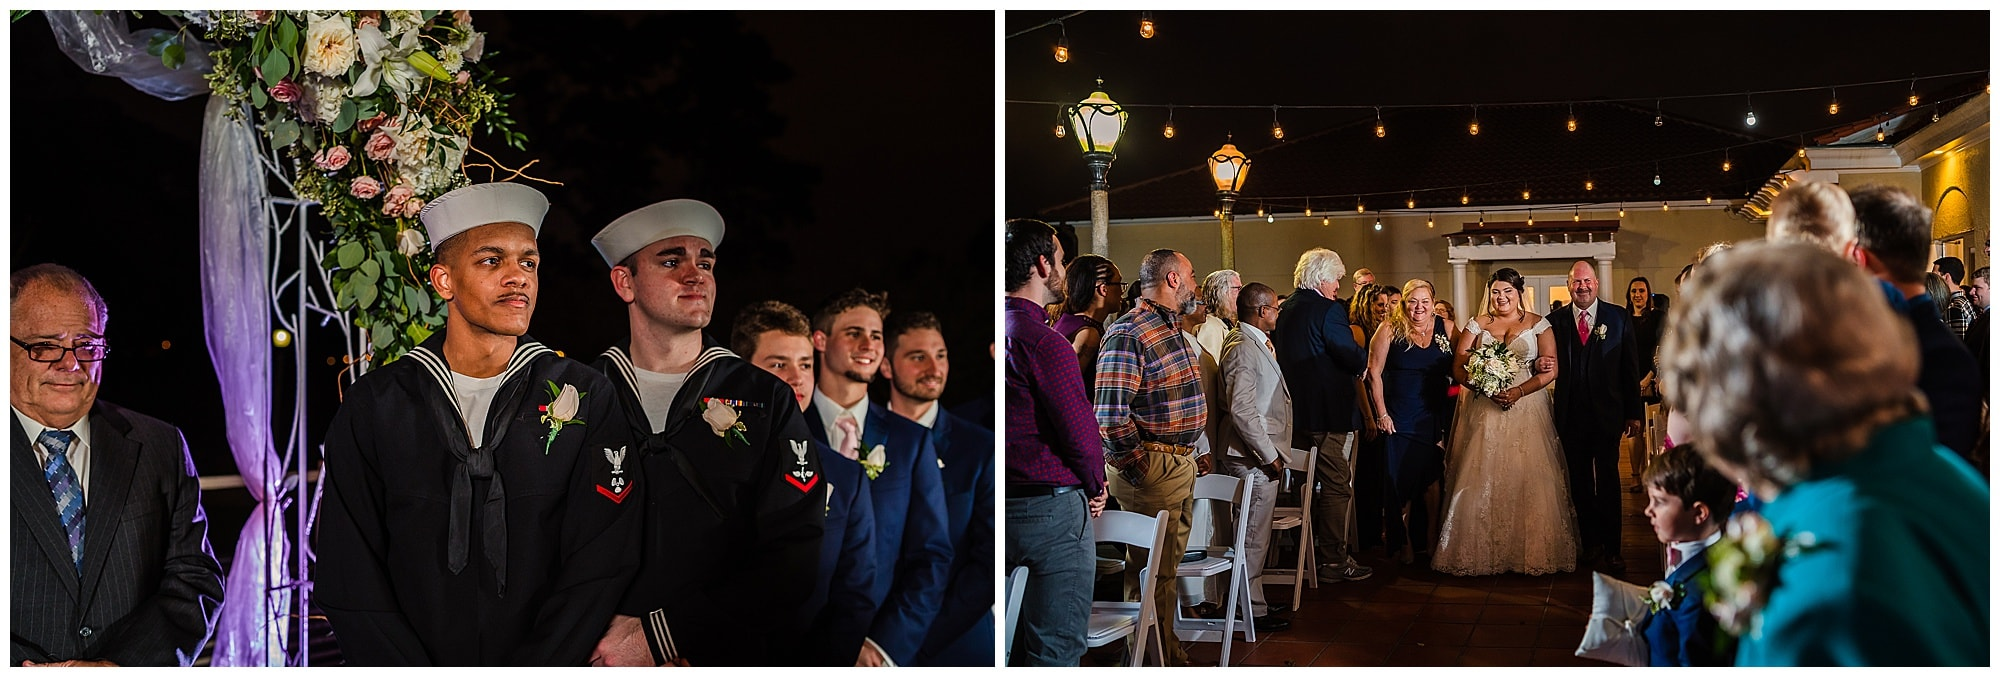 groom watching bride walk down aisle at Baton Rouge gallery wedding venue